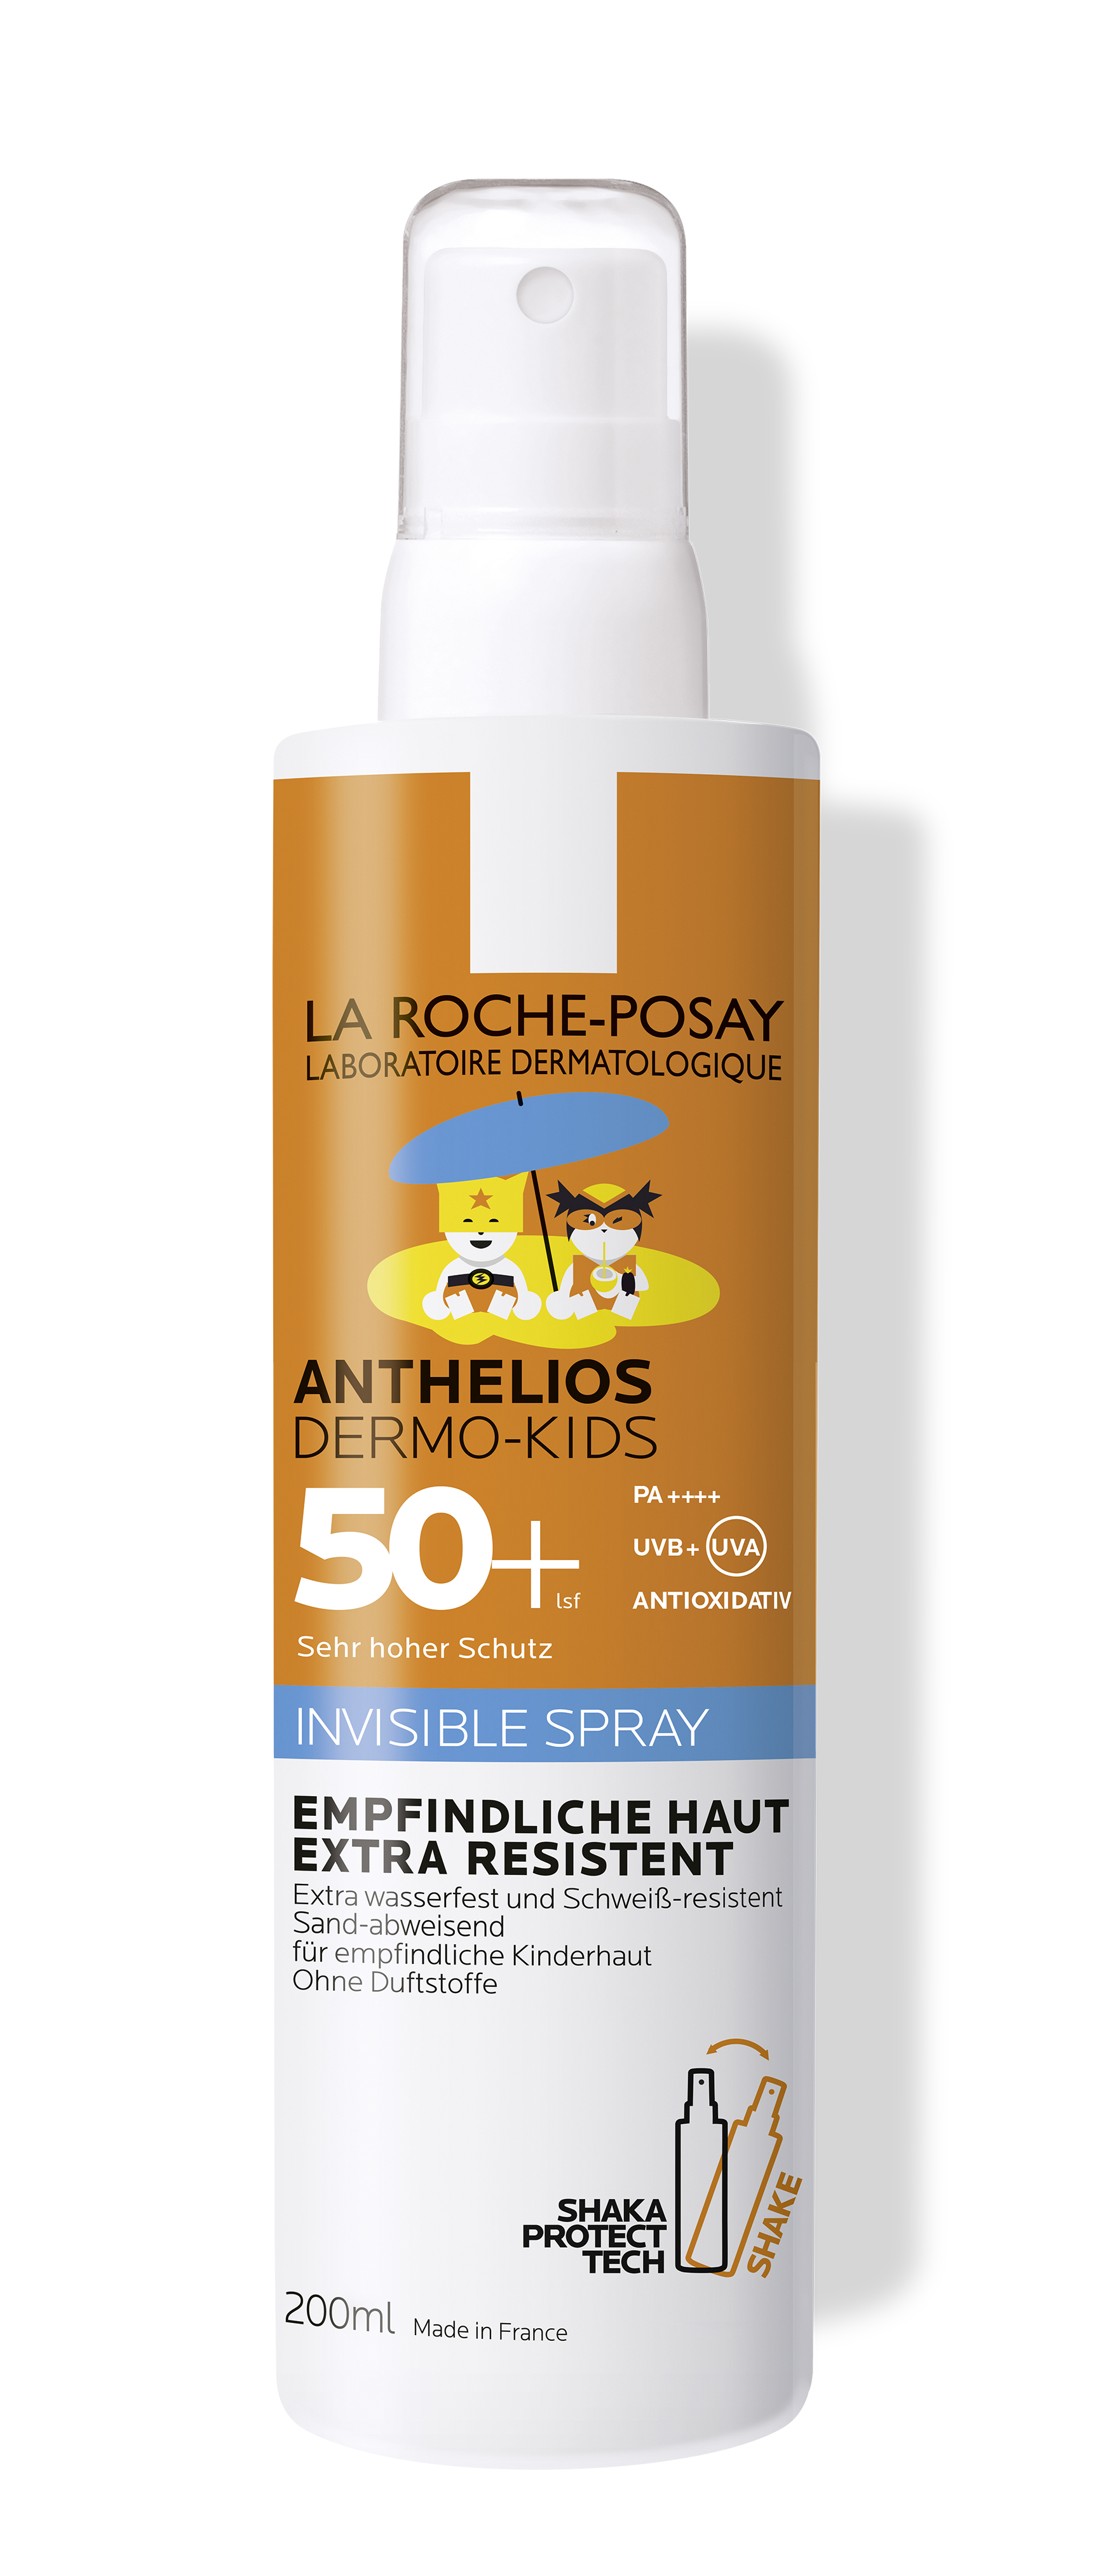 ROCHE-POSAY Anthelios Invisible Dermo-Kids LSF 50+